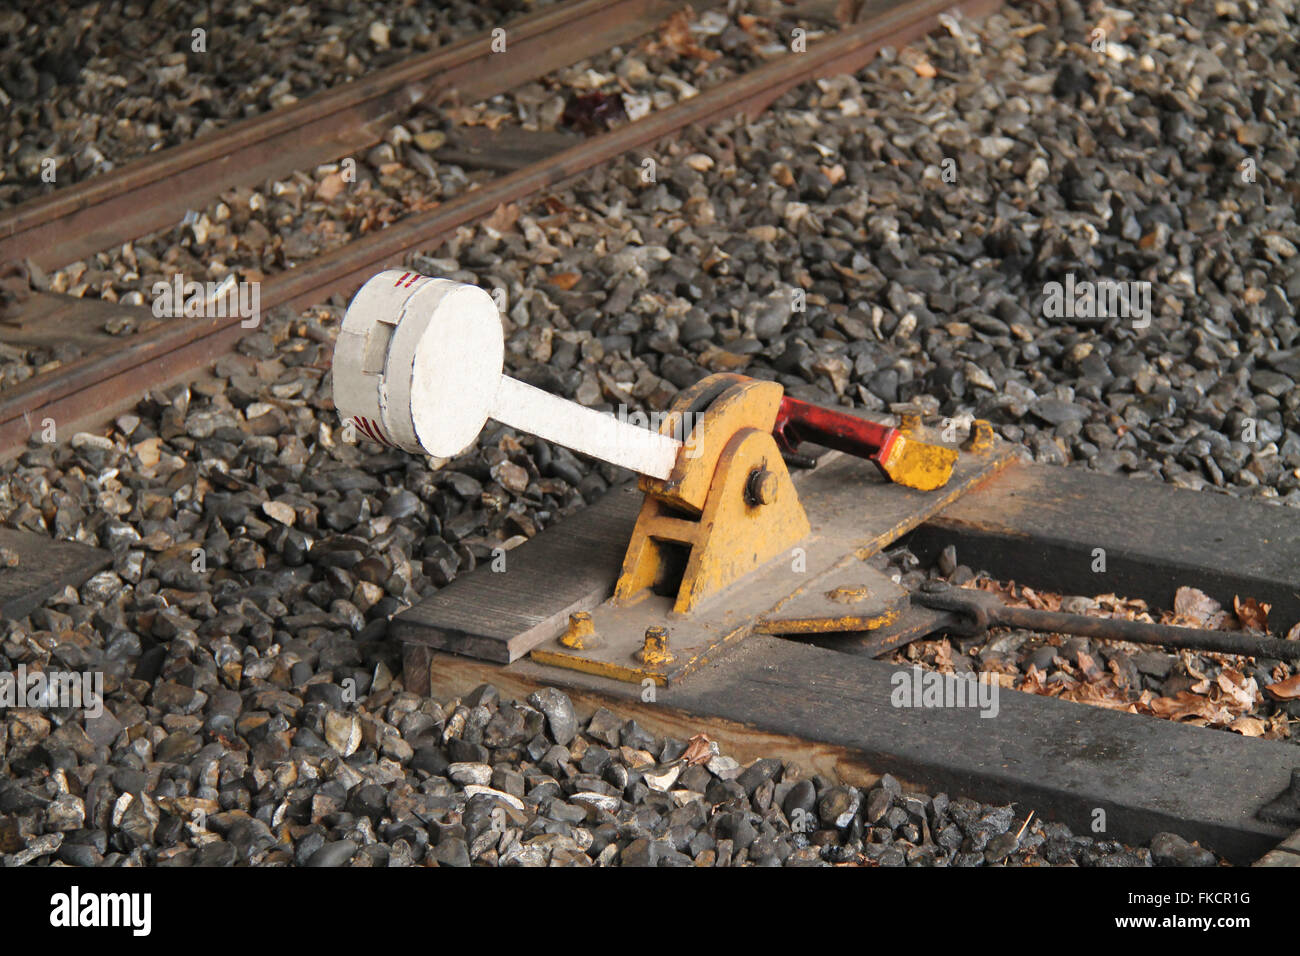 Change Lever For Trains : Railway points lever stock photos